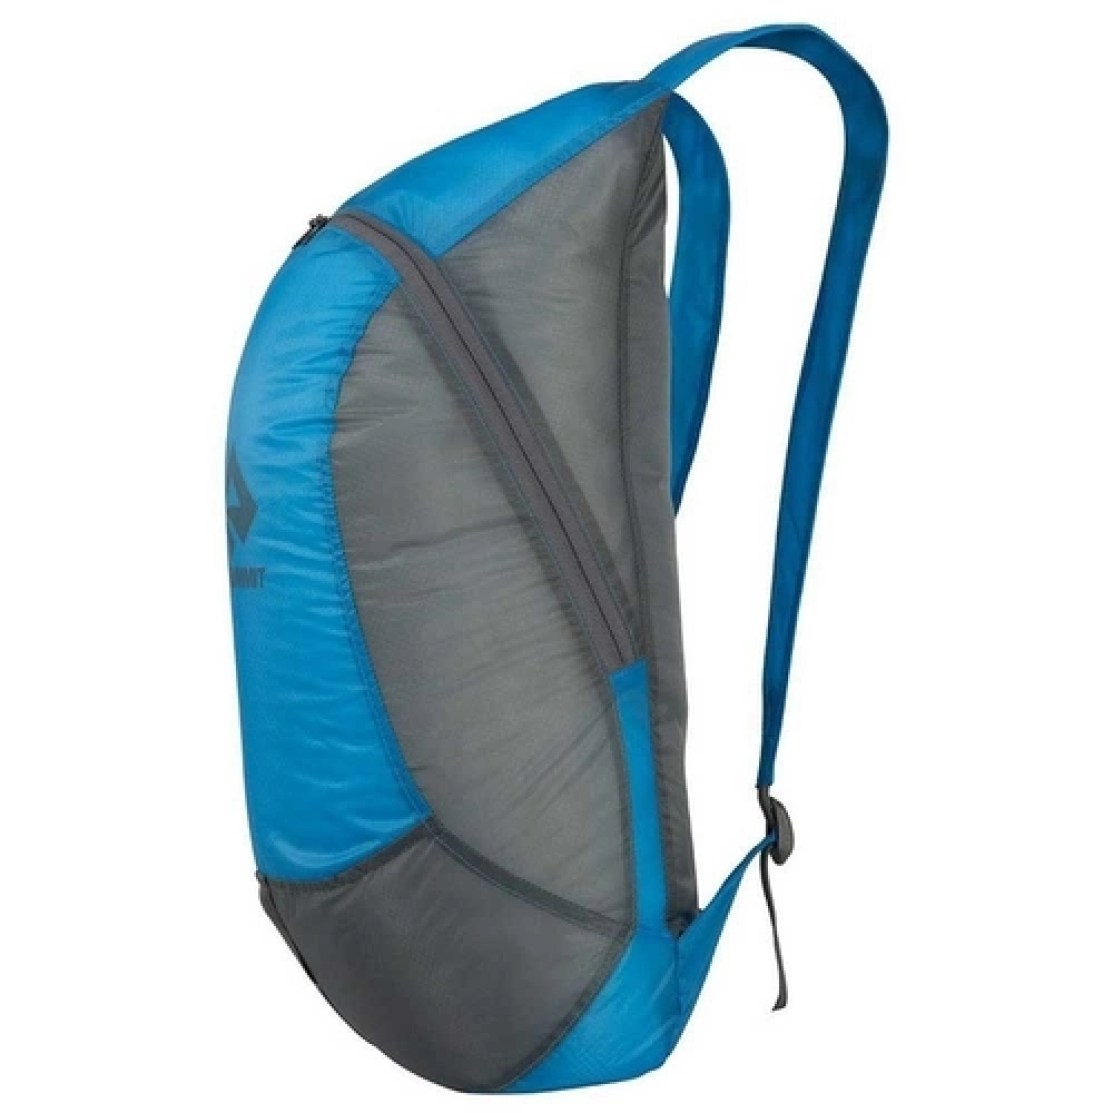 Sea To Summit Ultra-sil Day Pack 20l nas americanas